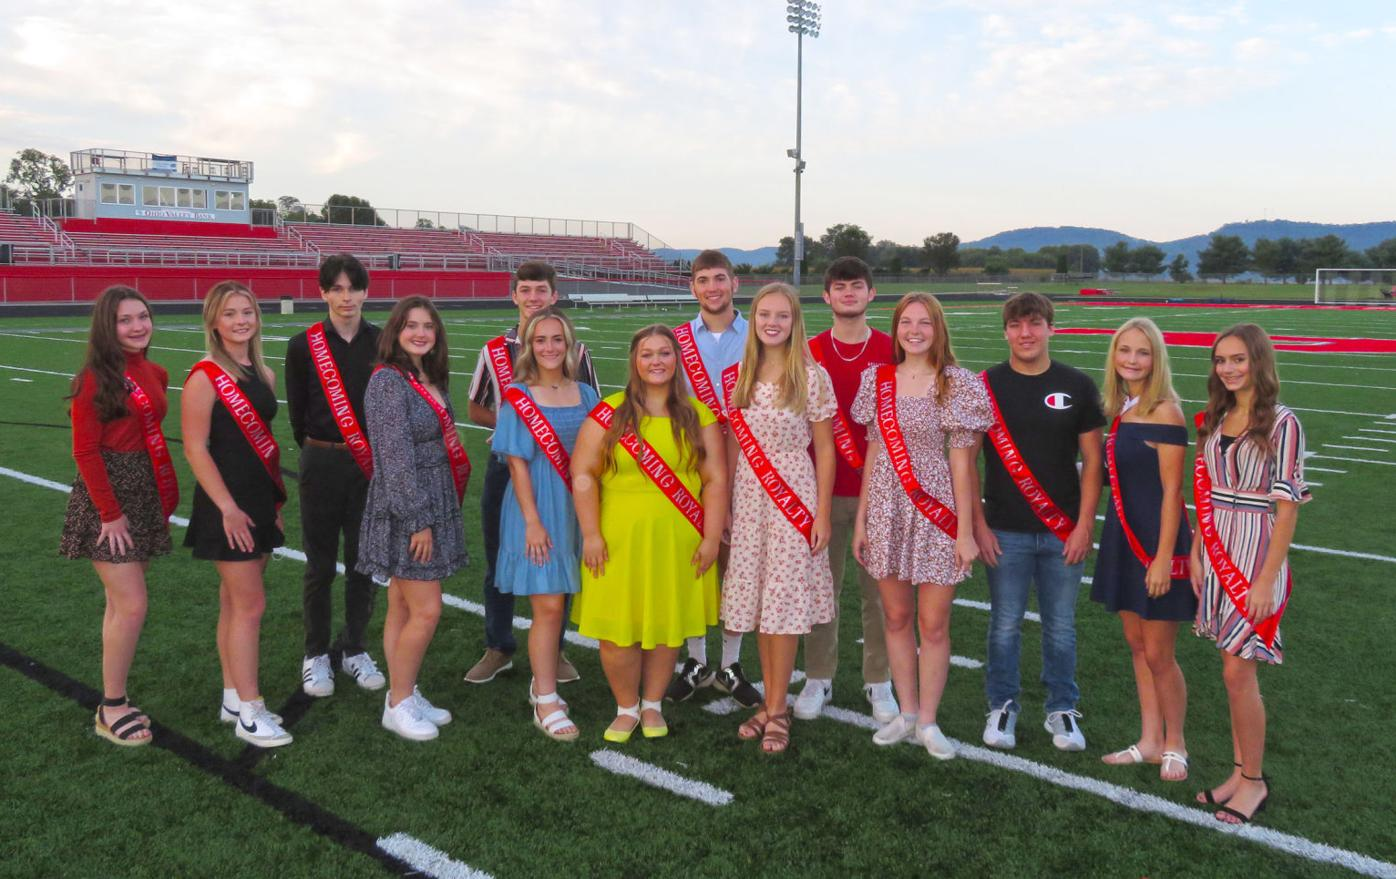 Piketon Homecoming Court announced for Oct. 1 ceremony